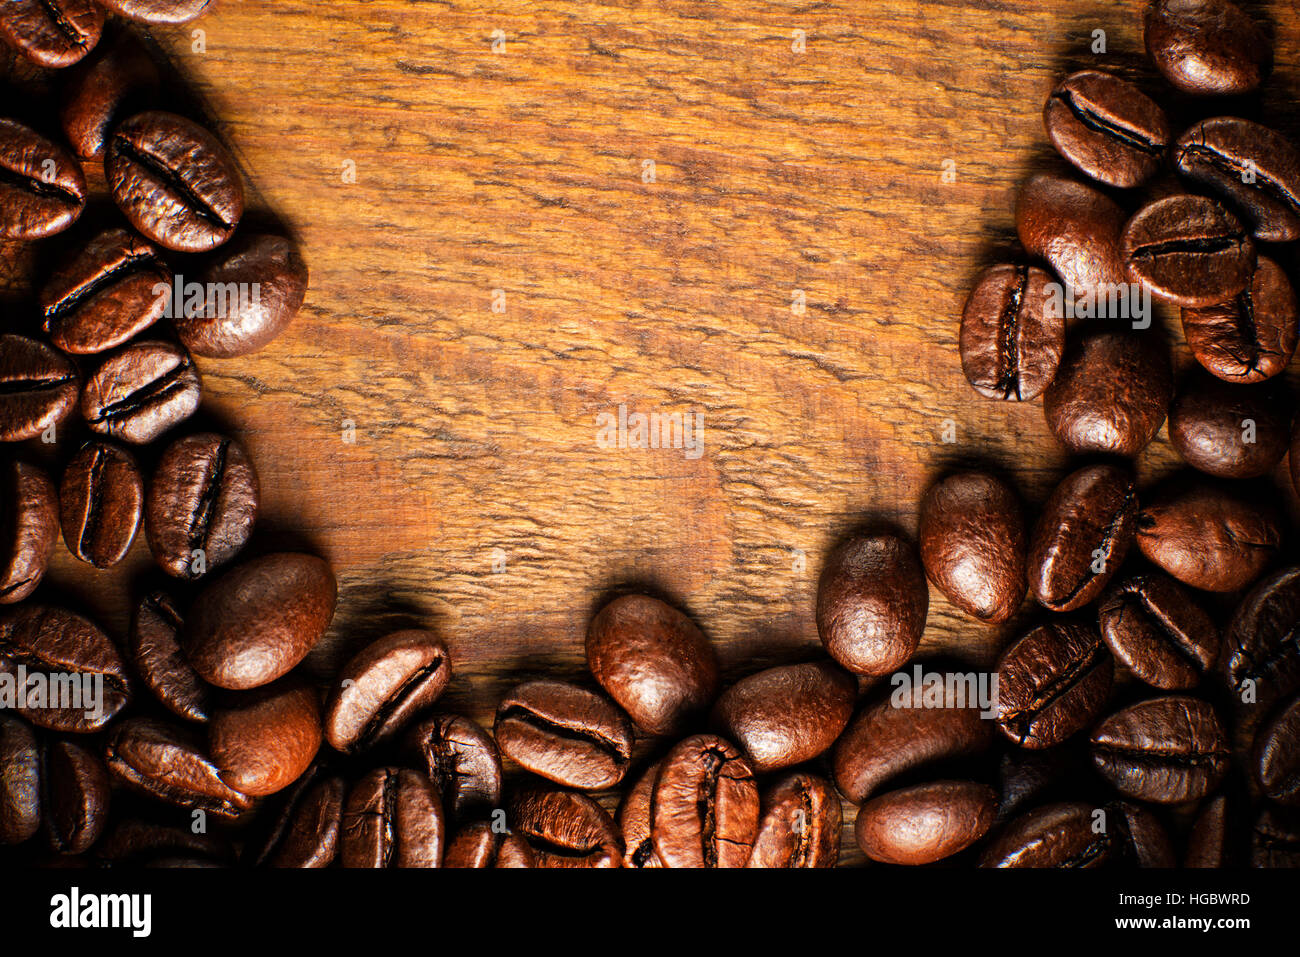 Coffee beans on wooden table close up - Stock Image